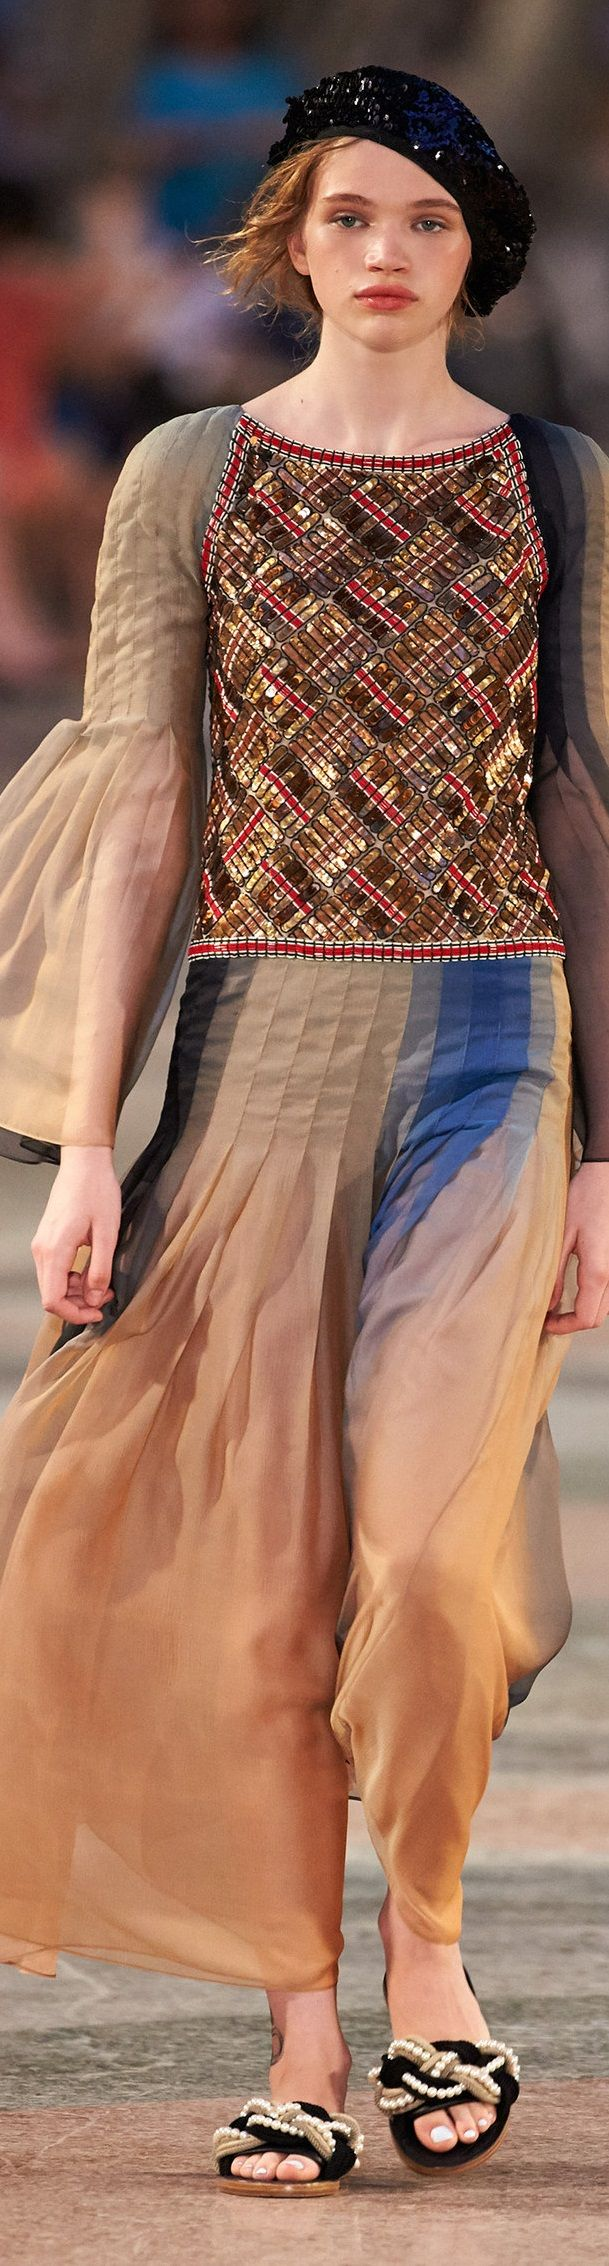 Chanel Cruise 2017, La Habana Cuba - Love the ribbon weave top and pleated skirt! Hate, Hate the shoes! Shoes are horrendous! GIve us pretty sandals!